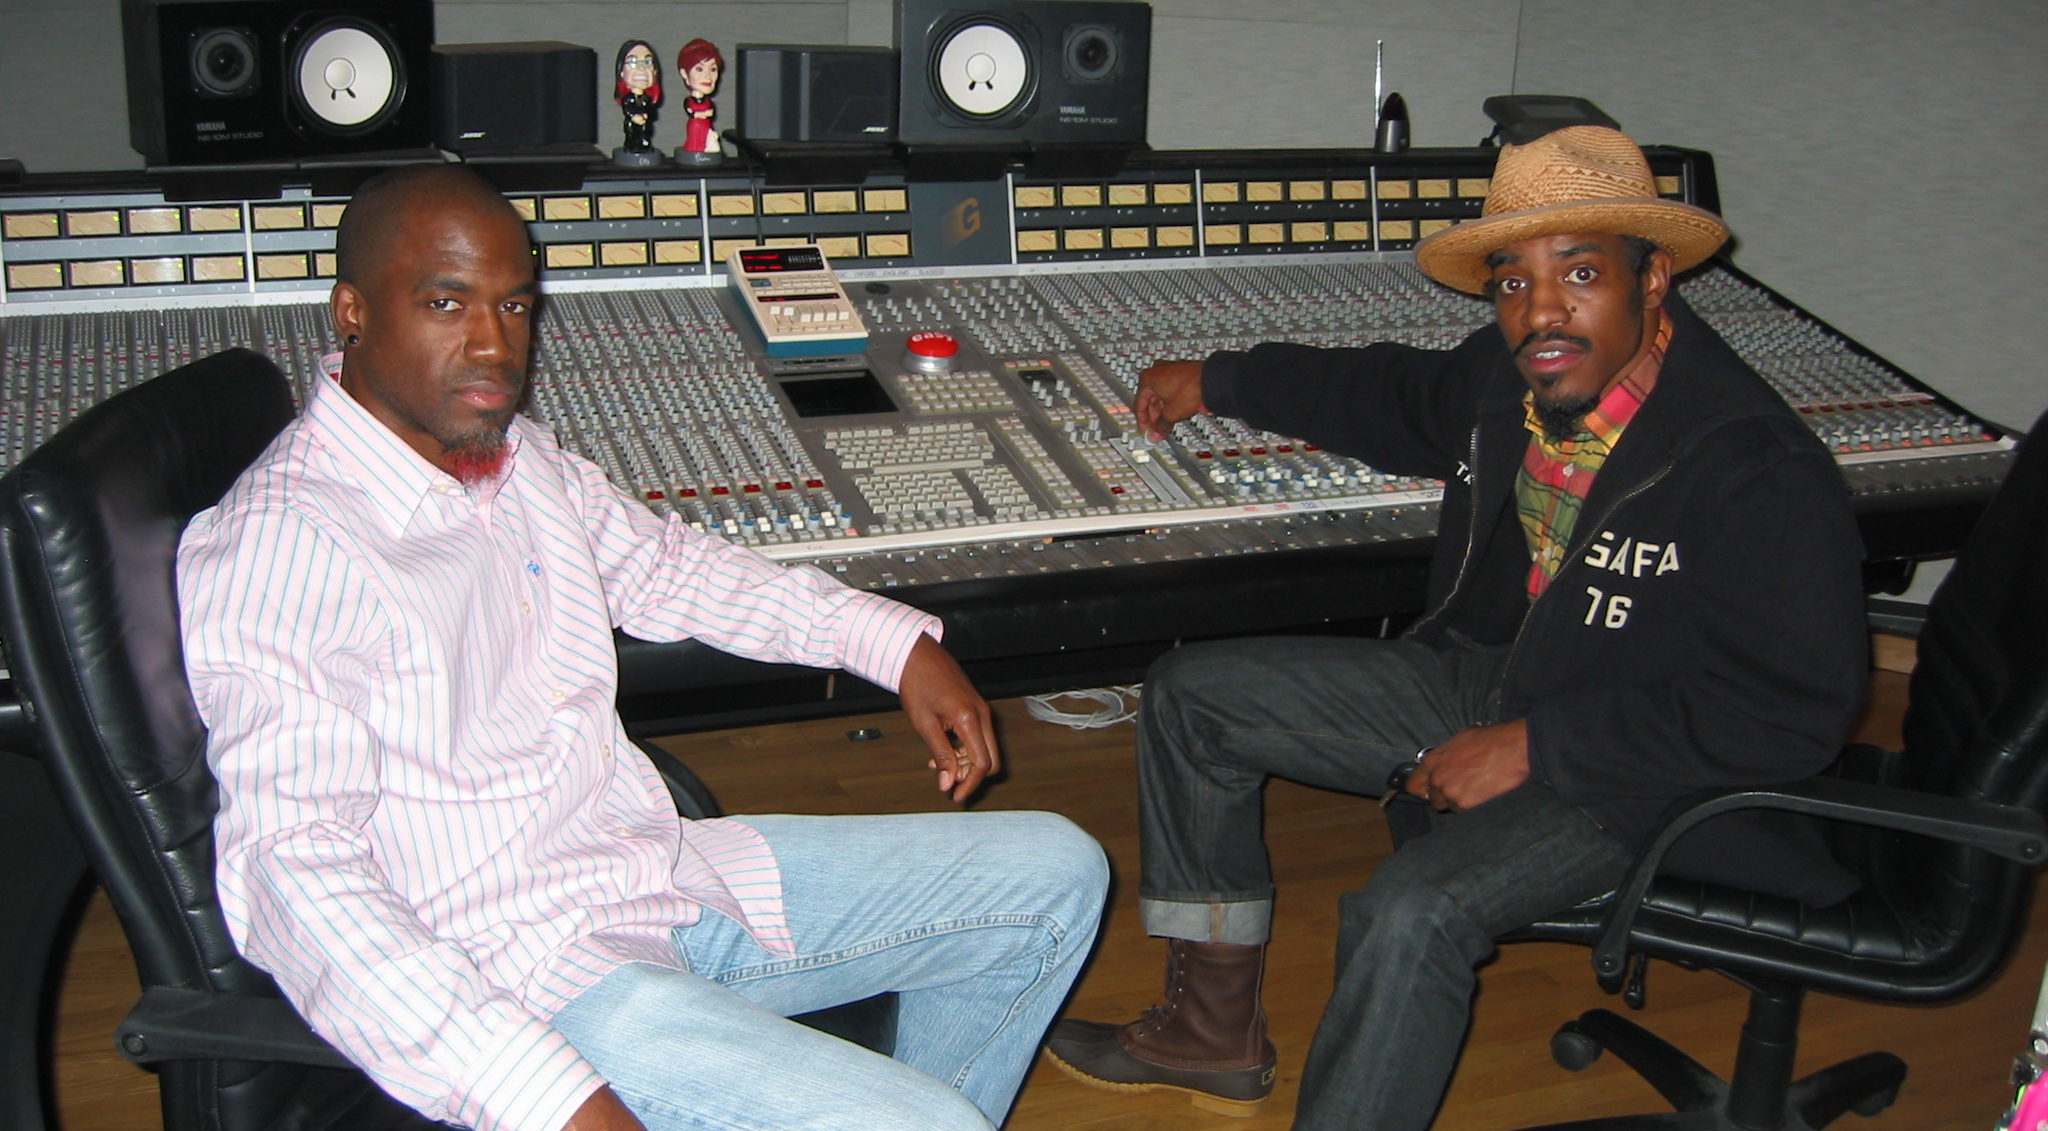 Producer/Engineer Neal Pogue with Andre 3000 and a beautiful SSL mixing console.